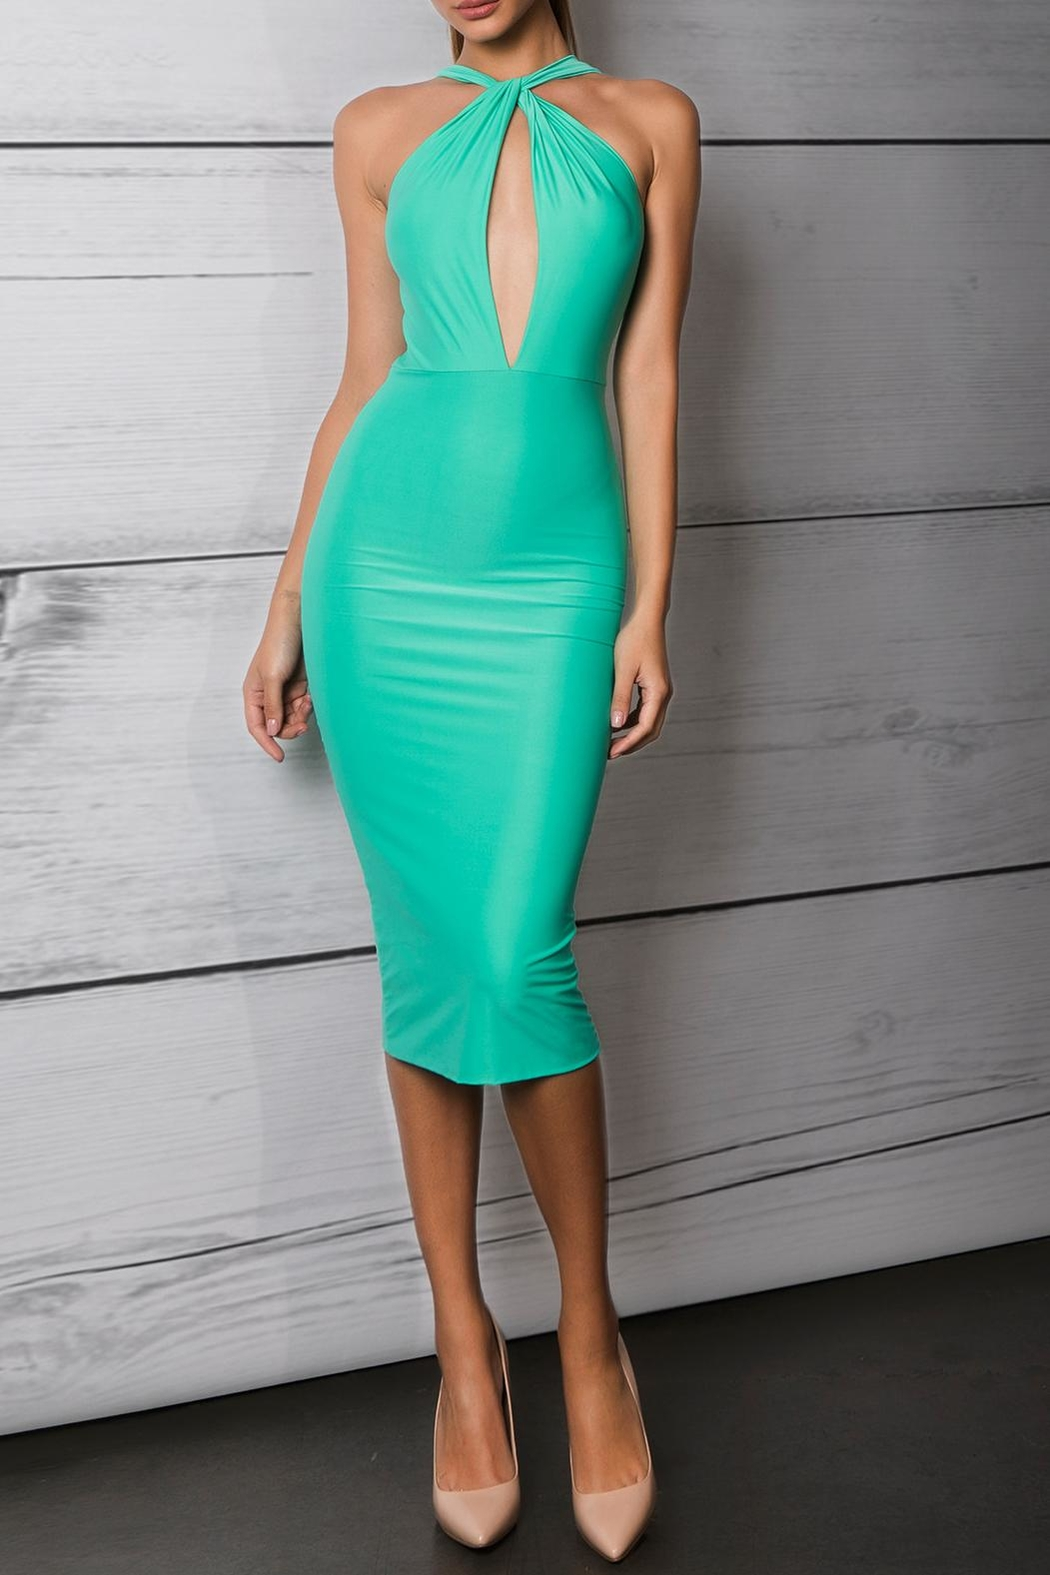 Savee Couture Green Cross Front Dress - Main Image